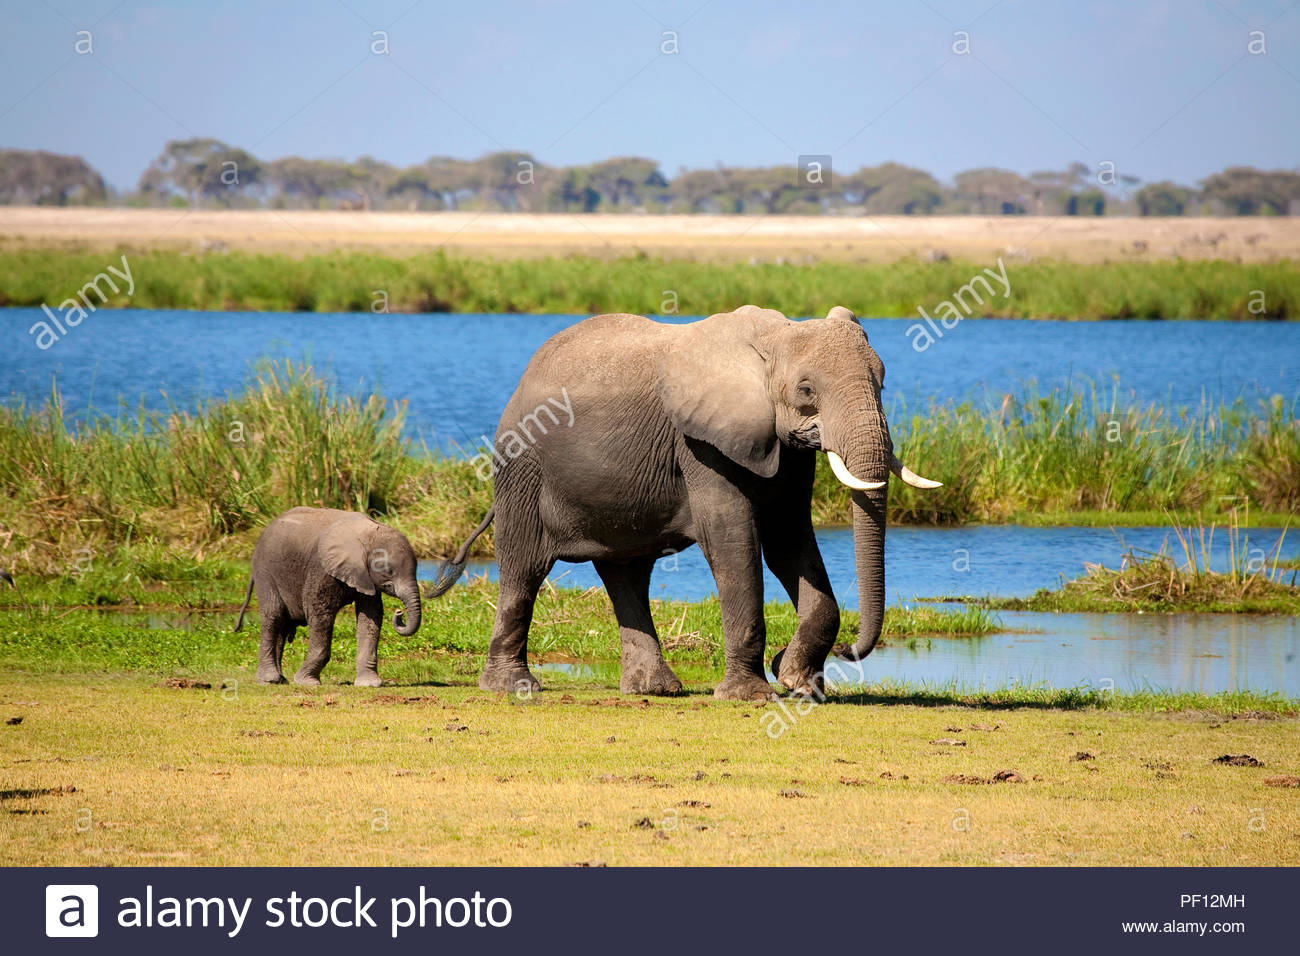 African bush elephant or African elephant (Loxodonta africana) adult with calf, Amboseli Nationalpark, Kenya - Stock Image